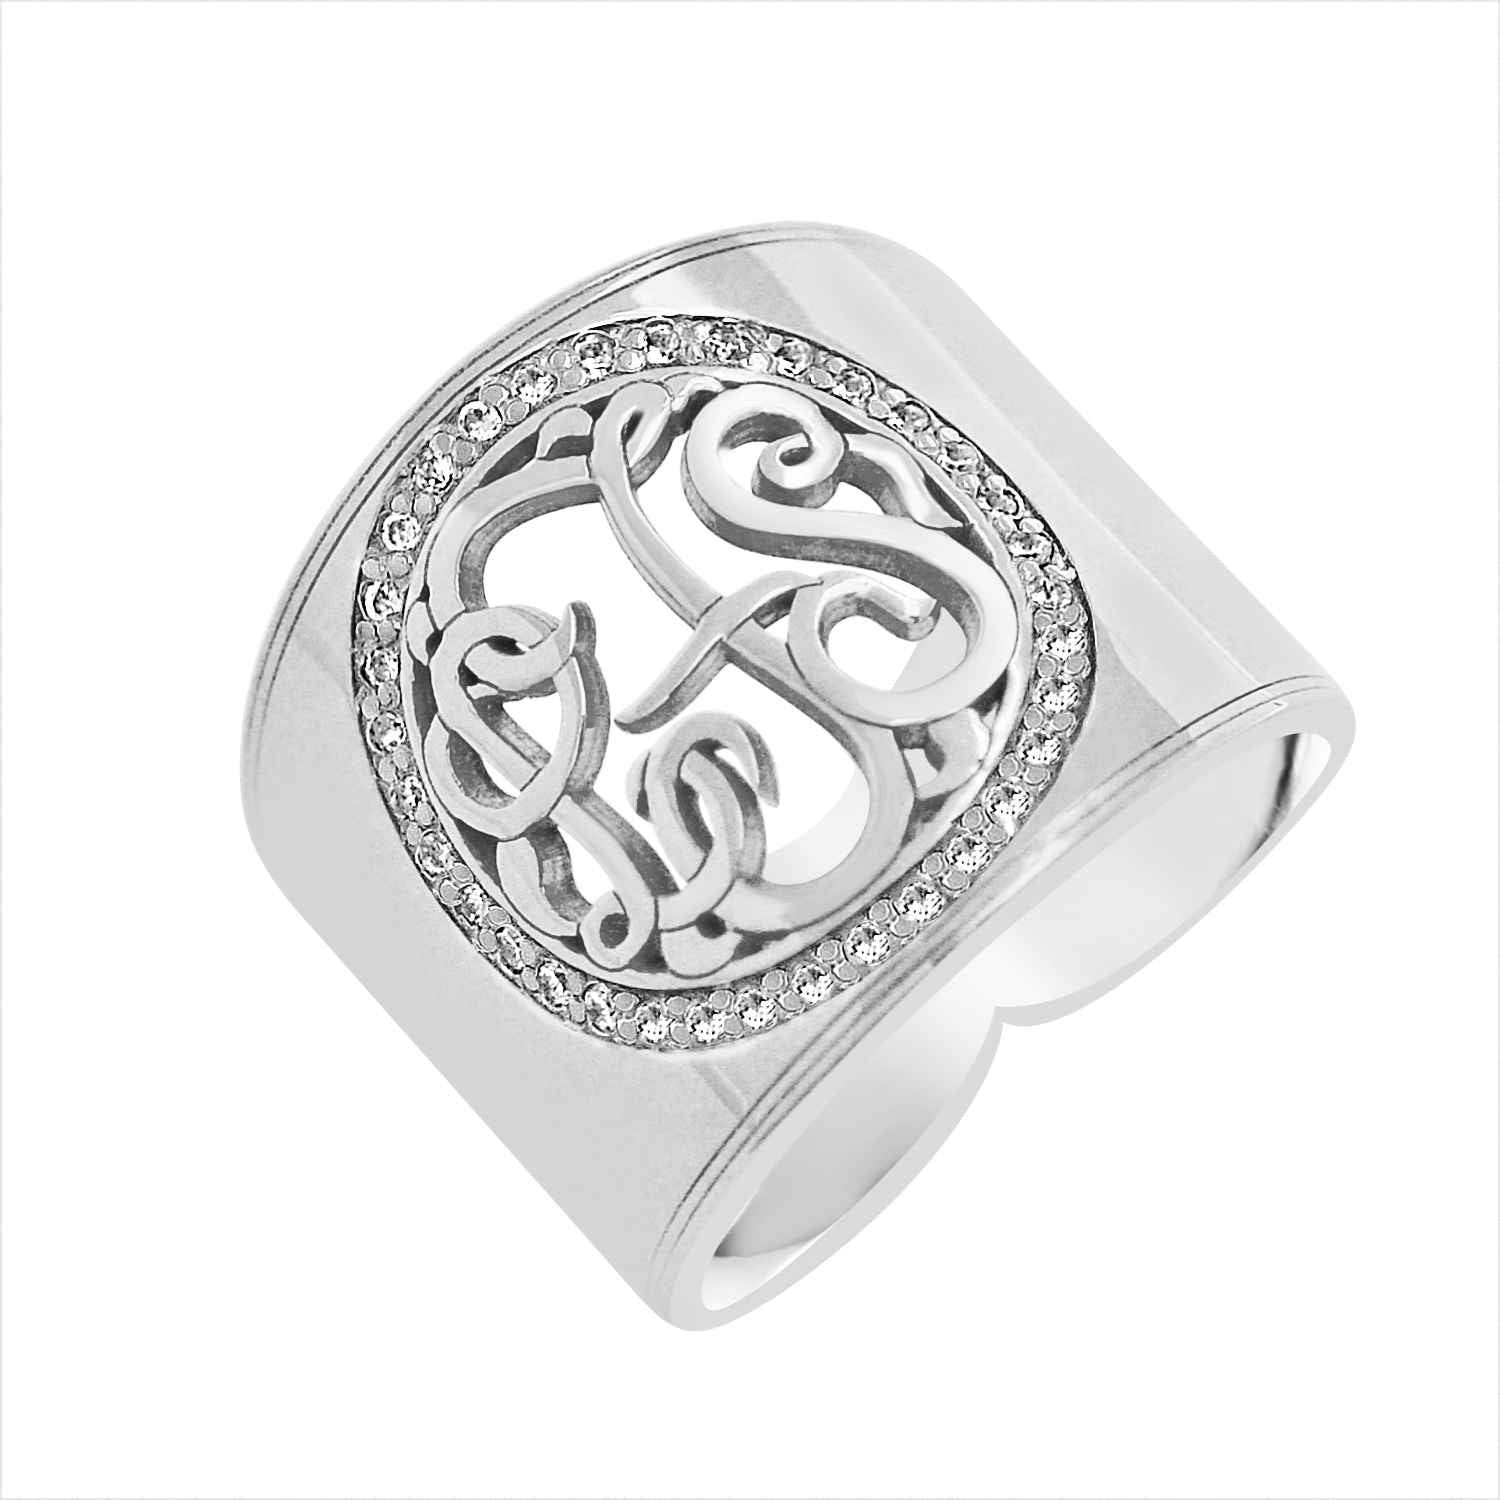 Details about  /14k Gold-Plated .925 Silver Two-Tone Scroll Cigar Band